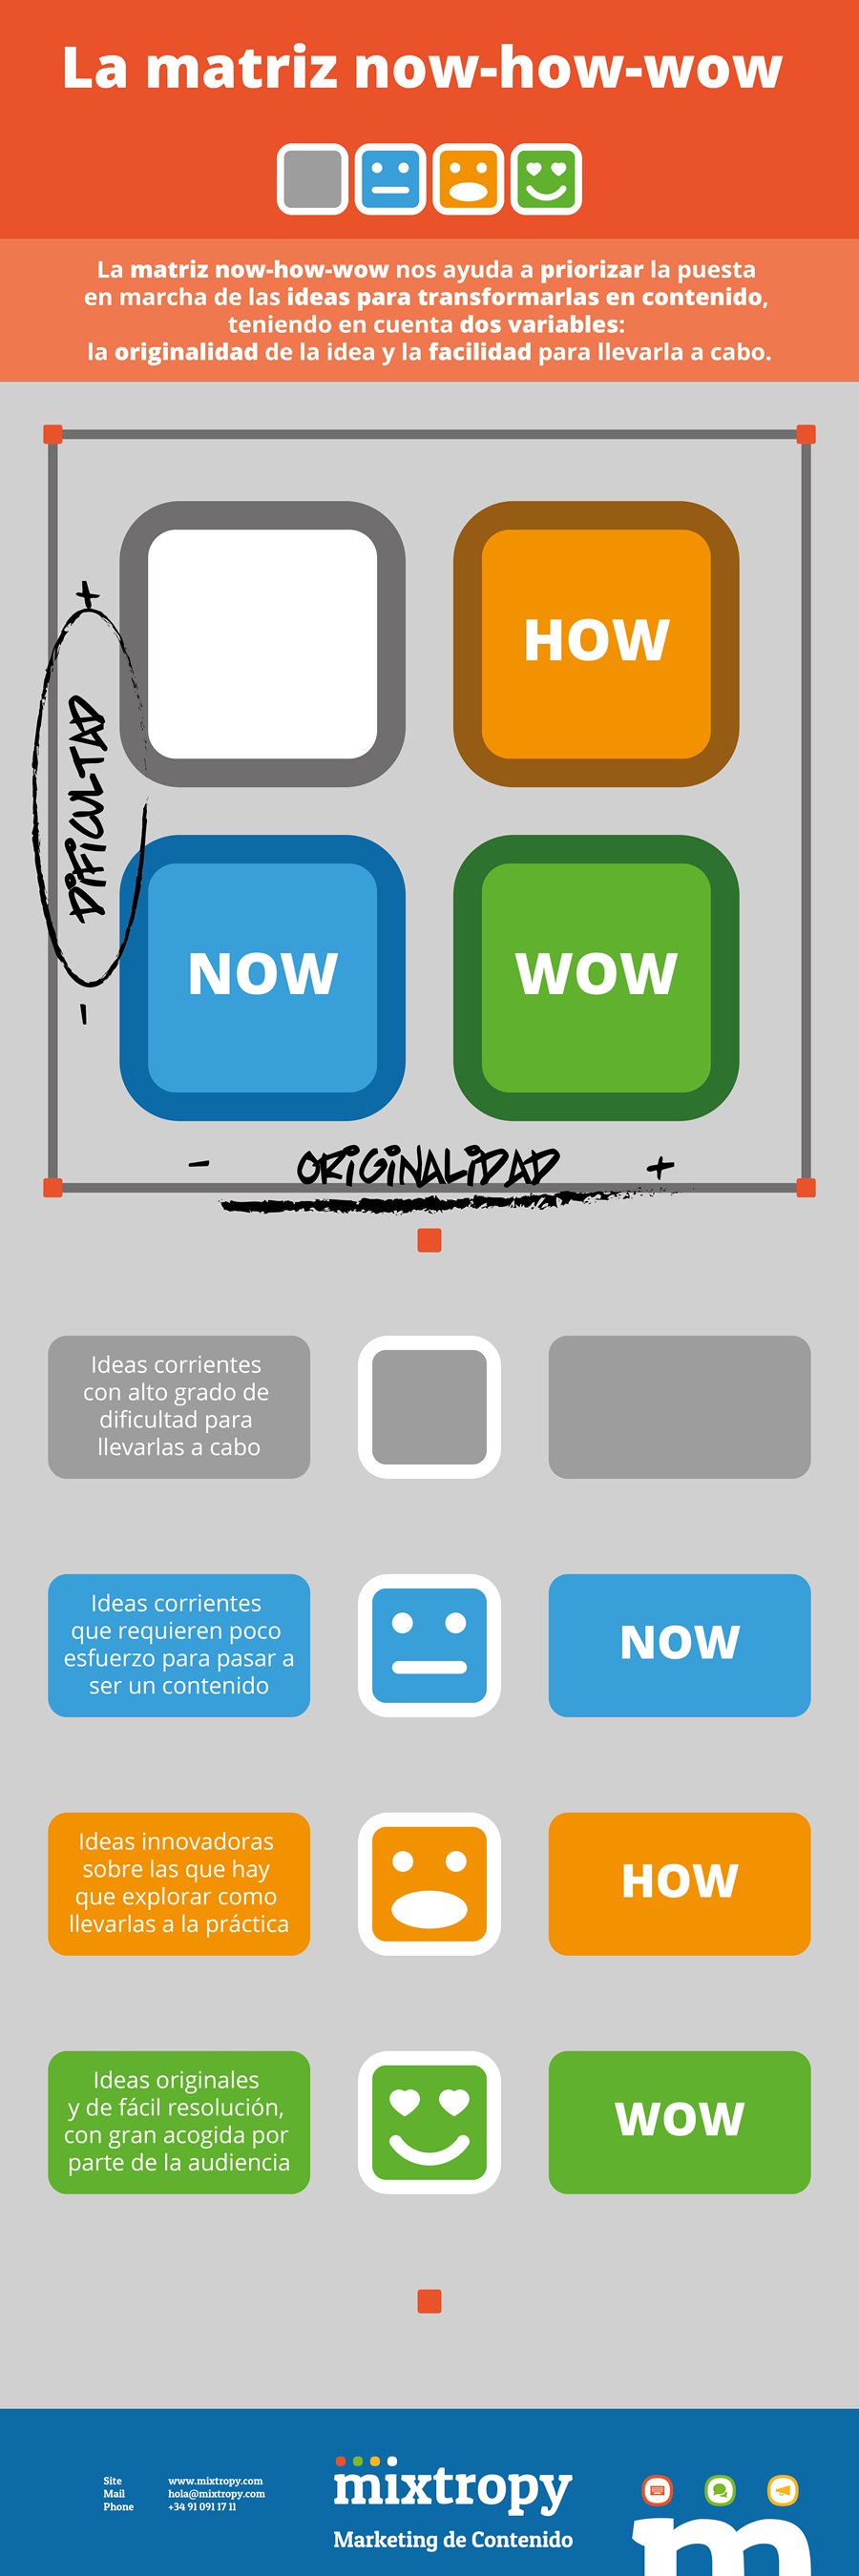 La matriz 'now-how-wow' en marketing de contenido